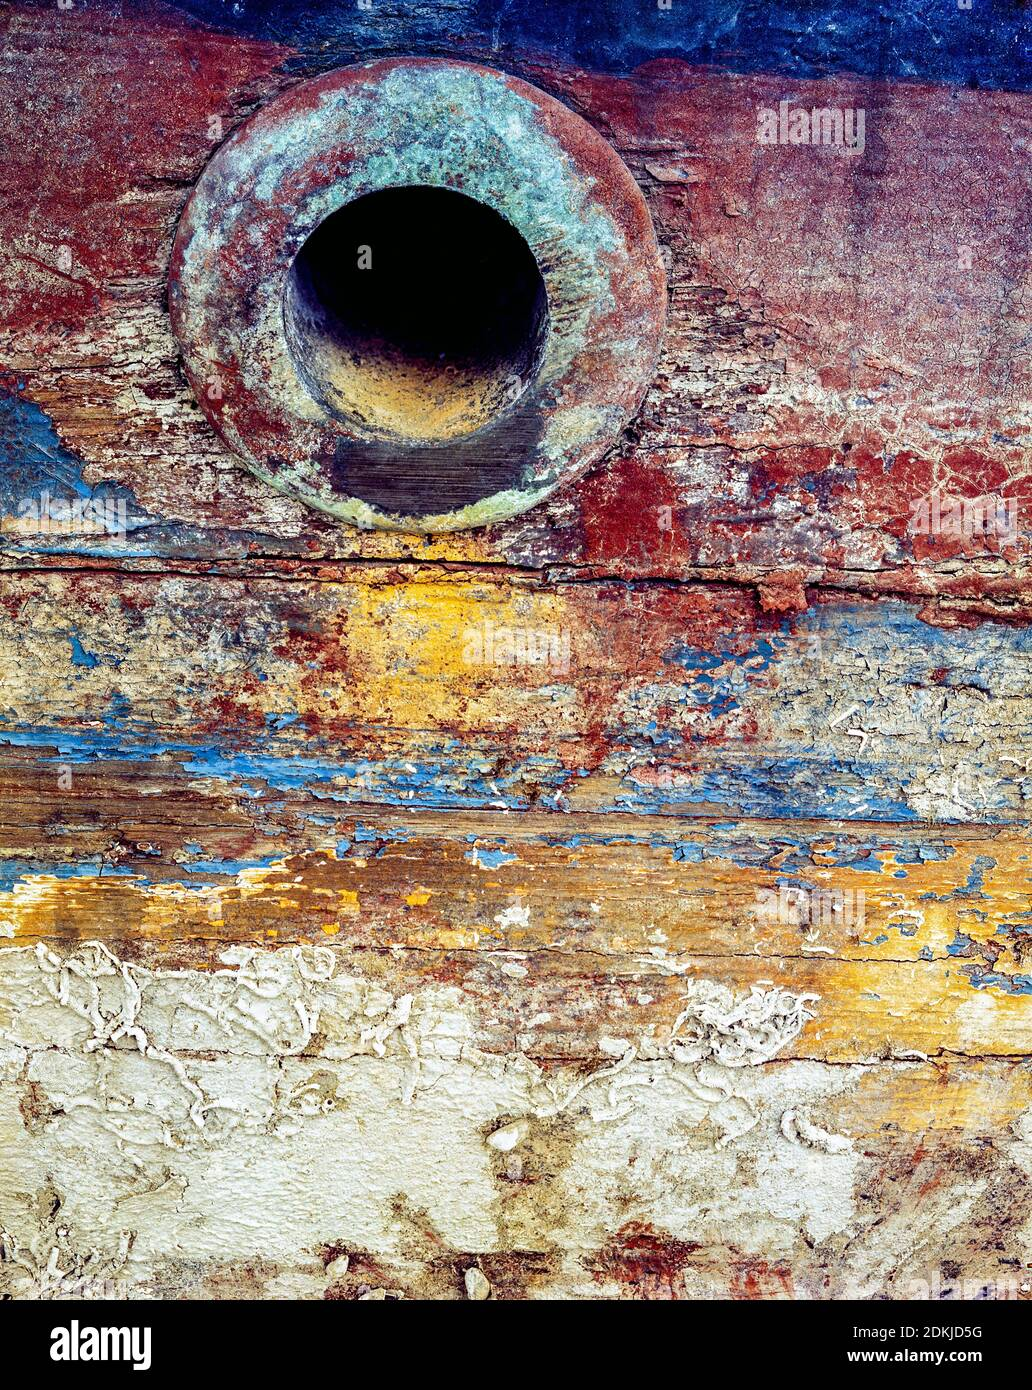 UK, London, Docklands, Isle of Dogs, shipping docks, early 1974. The worn hull of an old boat showing many layers of paint and sea worms calcium deposits by the coolant water outlet. Stock Photo